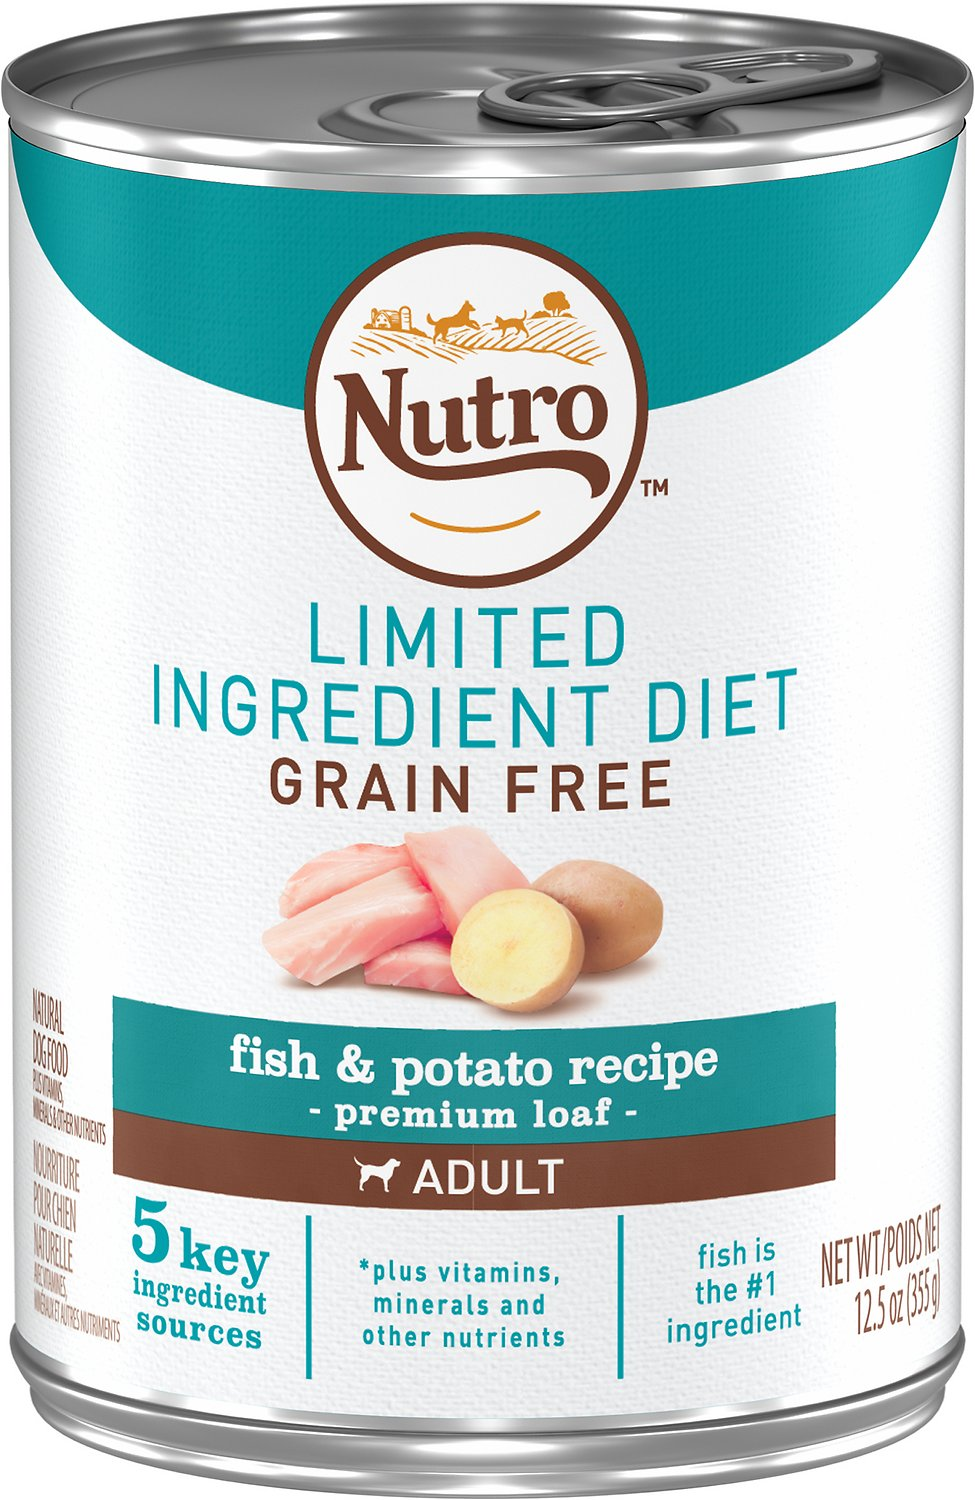 Nutro Limited Ingredient Diet Grain-Free Adult Fish & Potato Recipe Canned Dog Food, 12.5-oz, case of 12 Image